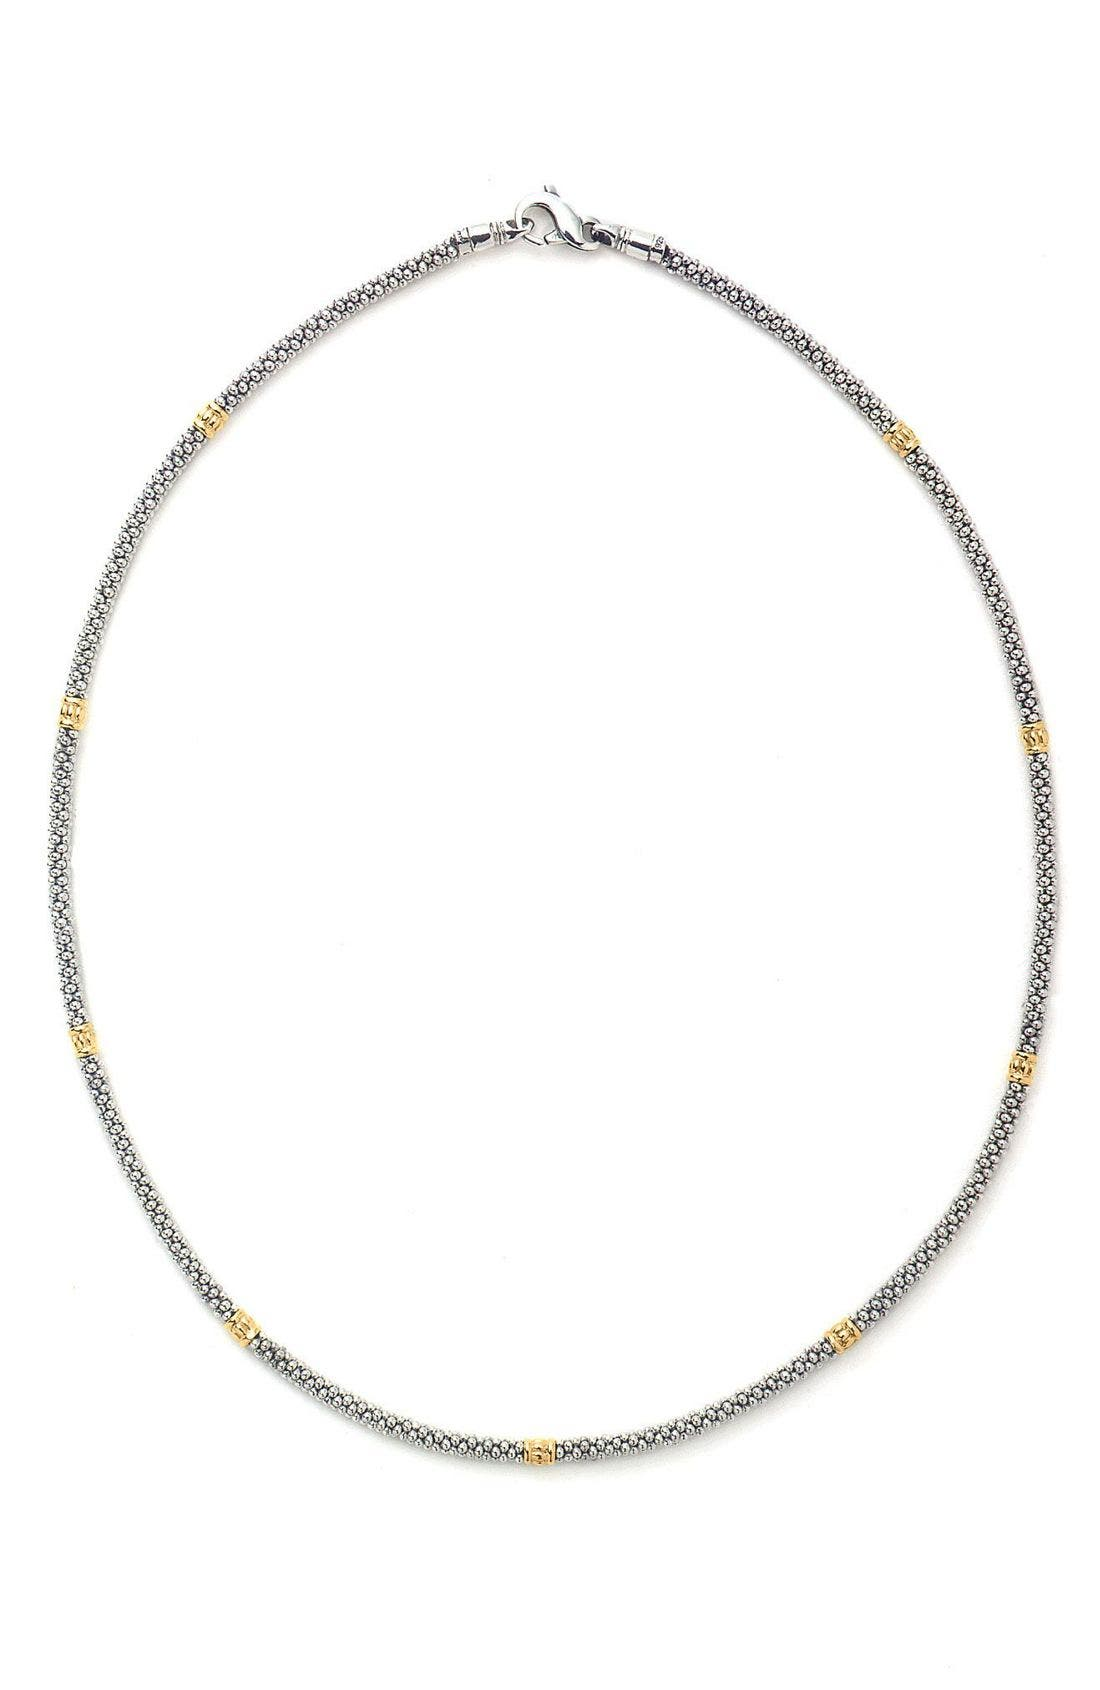 Alternate Image 1 Selected - LAGOS Caviar Rope Necklace